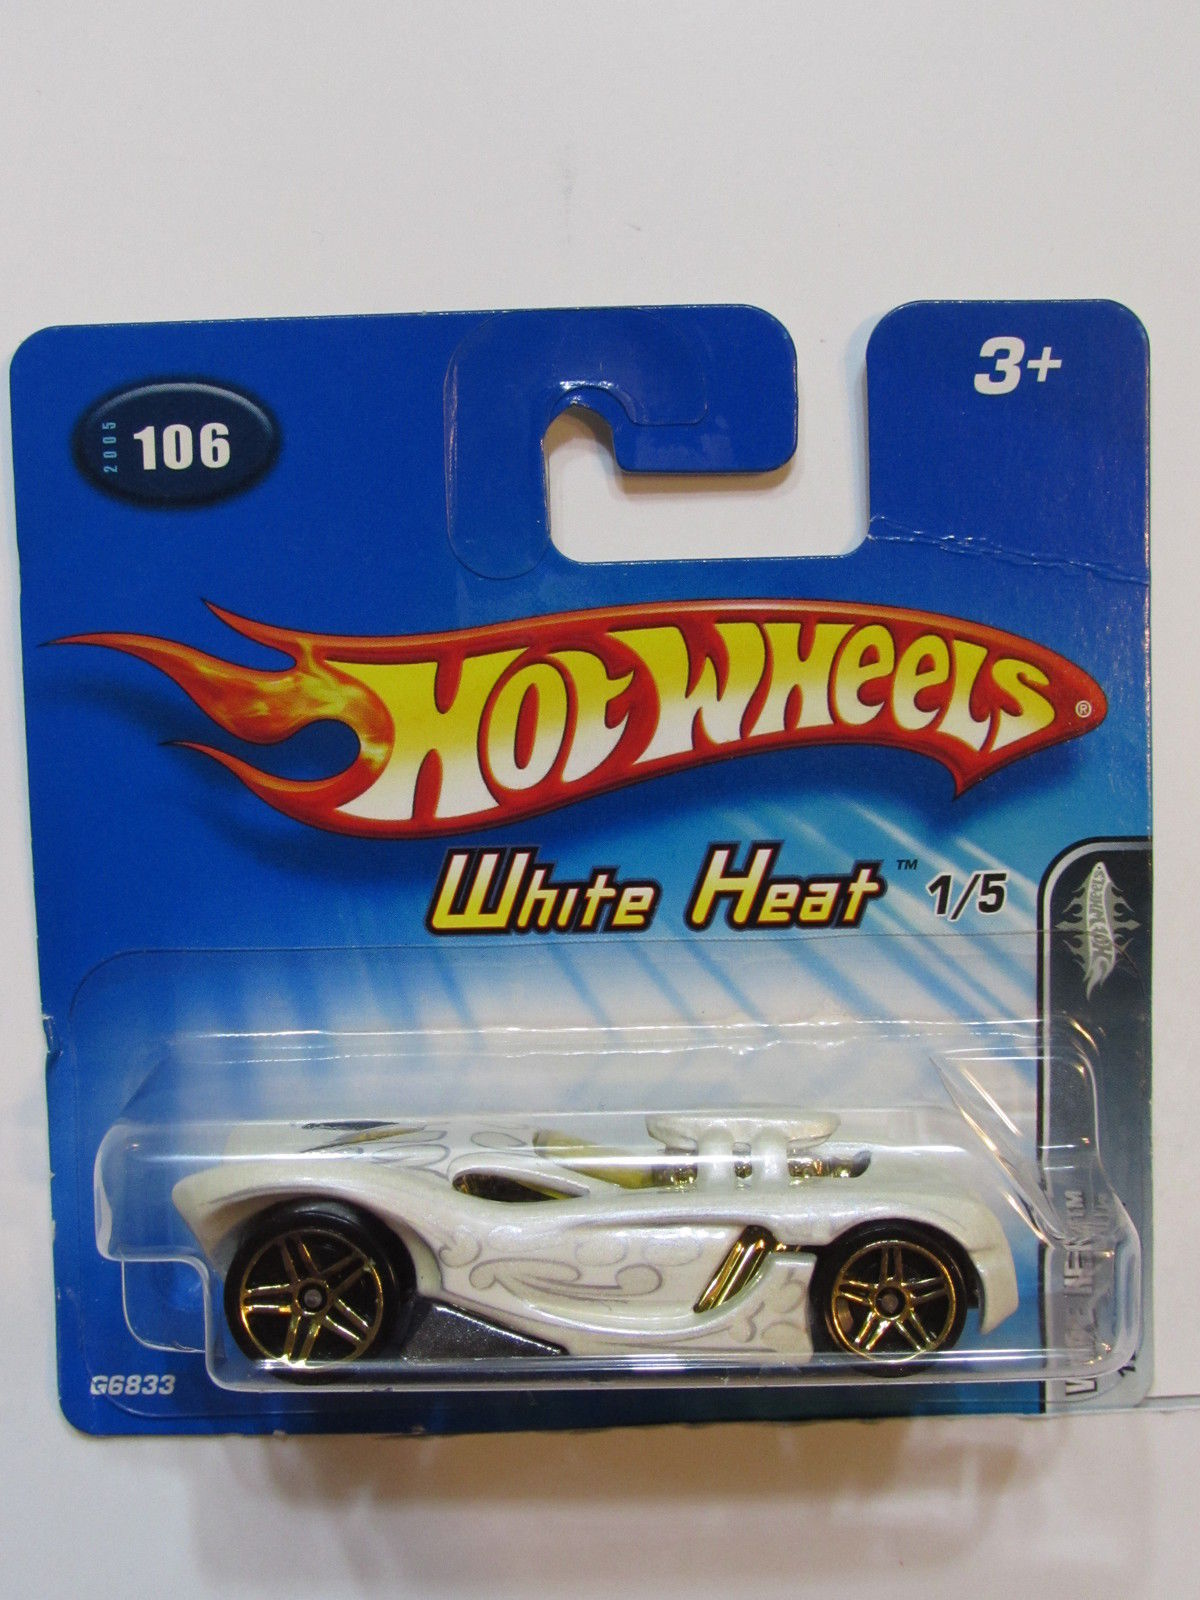 HOT WHEELS 2005 WHITE HEAT 16 ANGELS #106 SHORT CARD